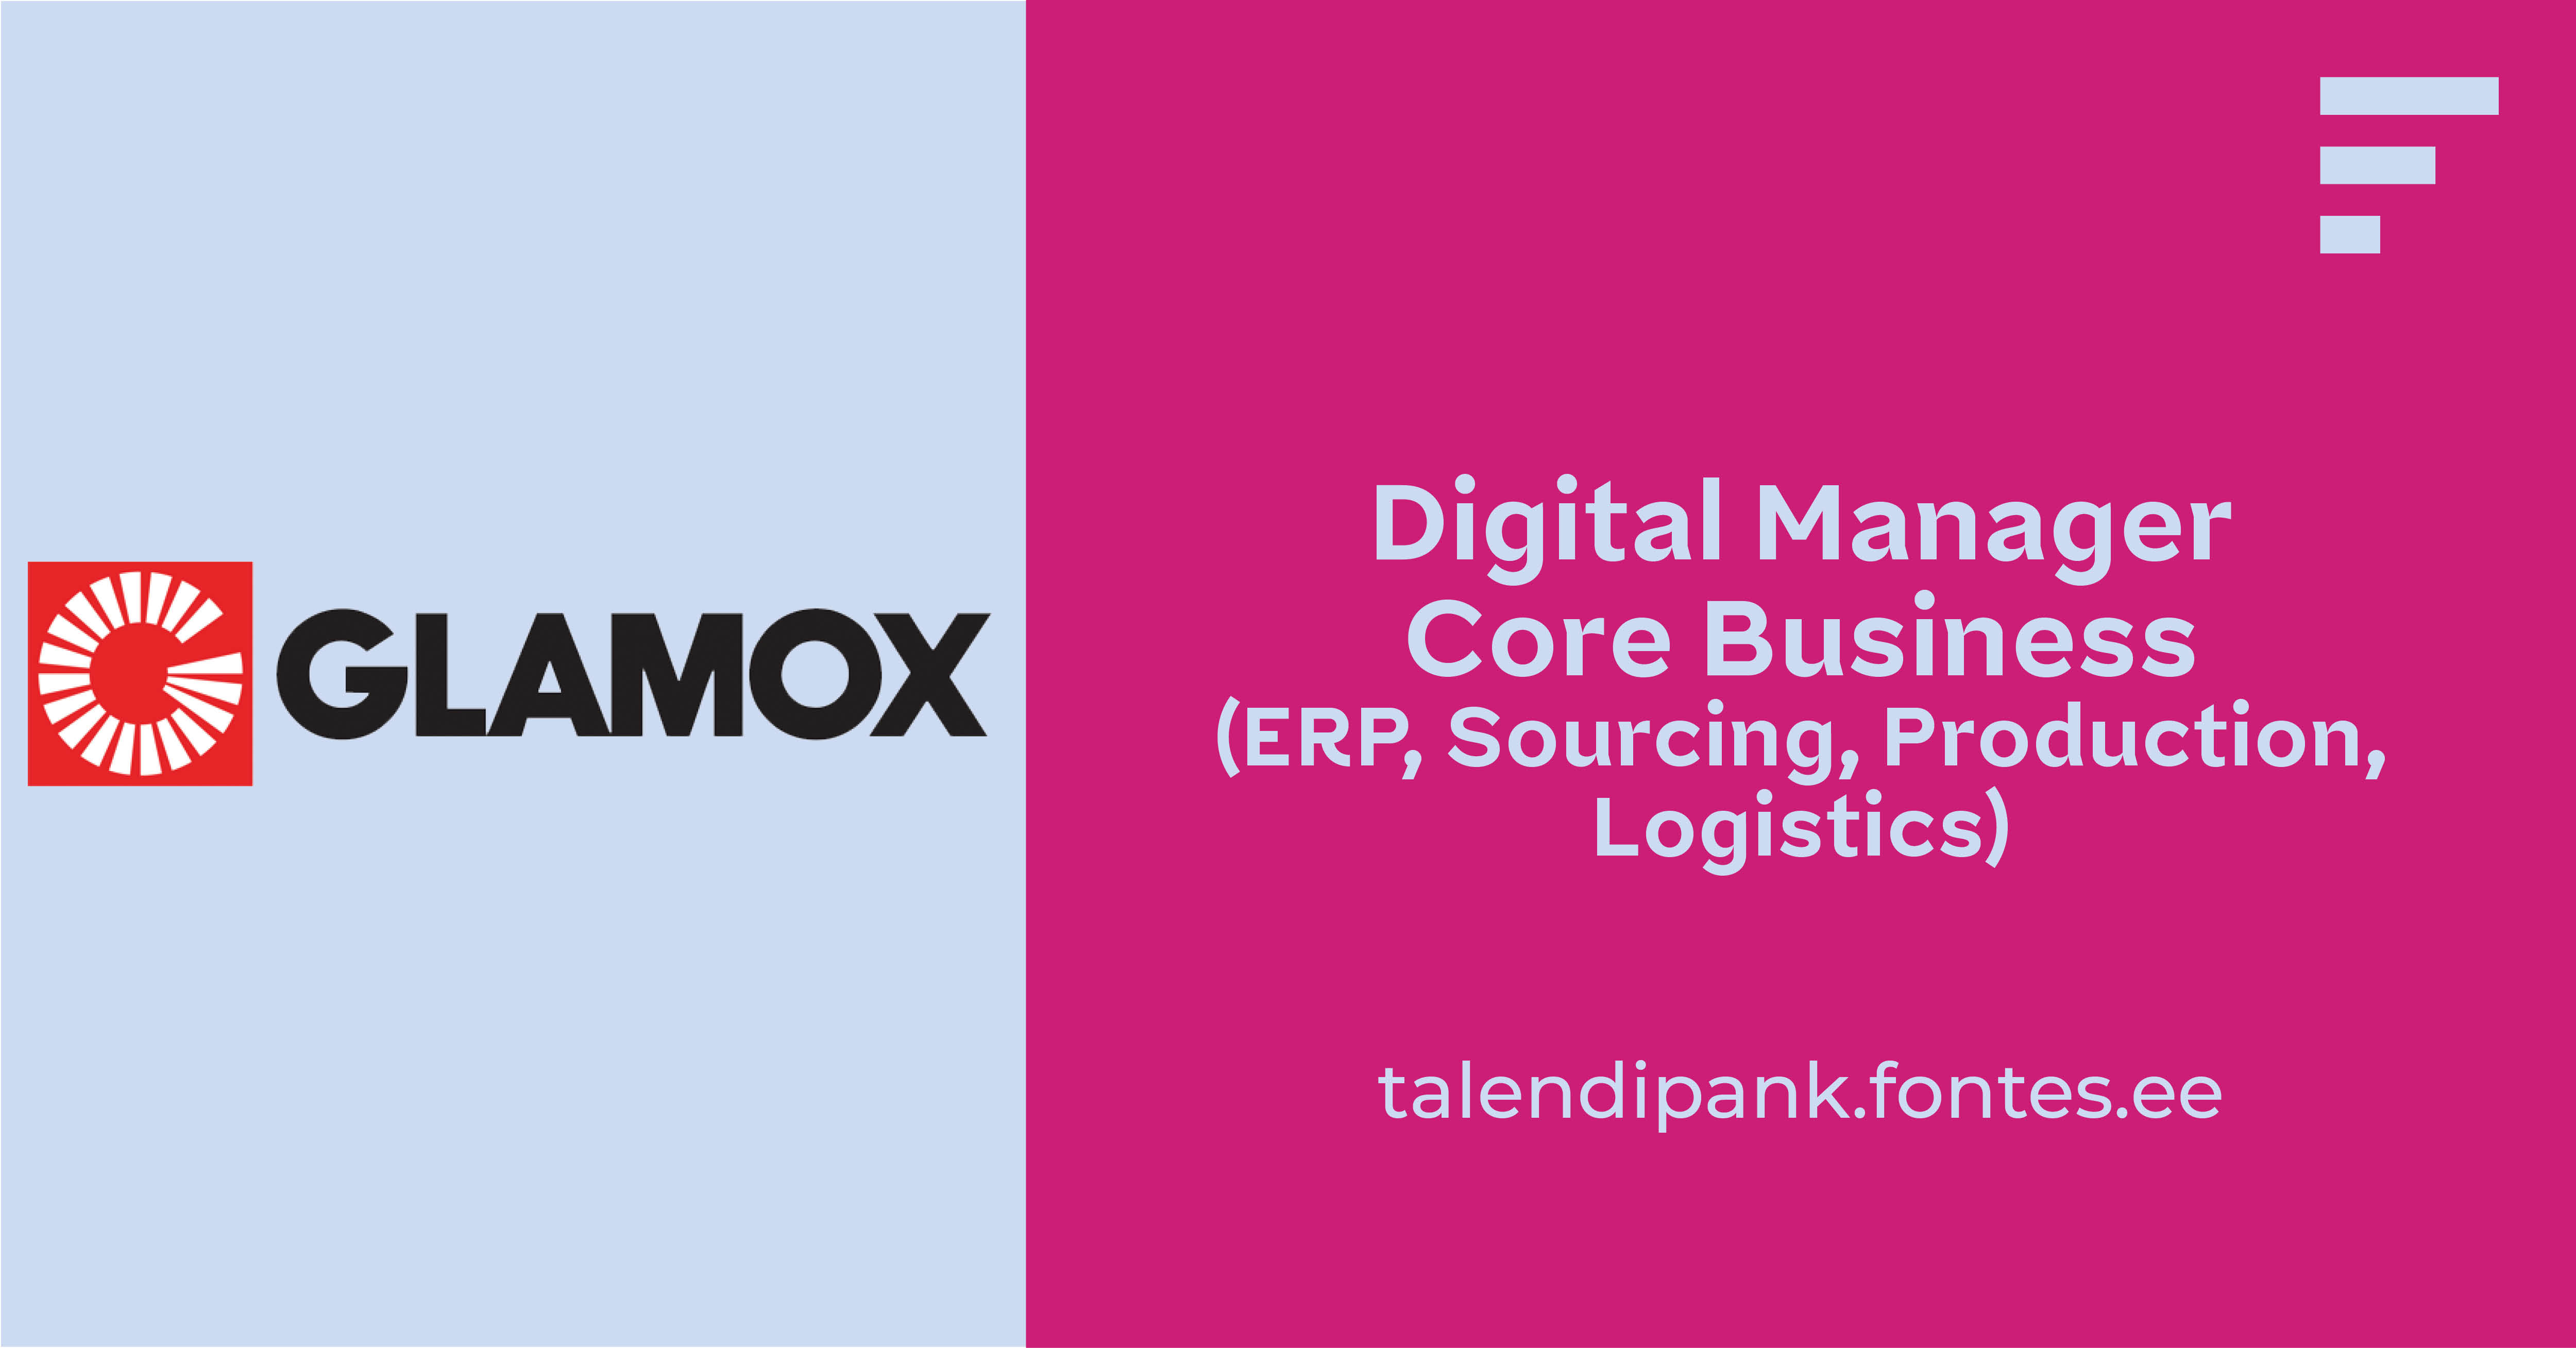 DIGITAL MANAGER CORE BUSINESS